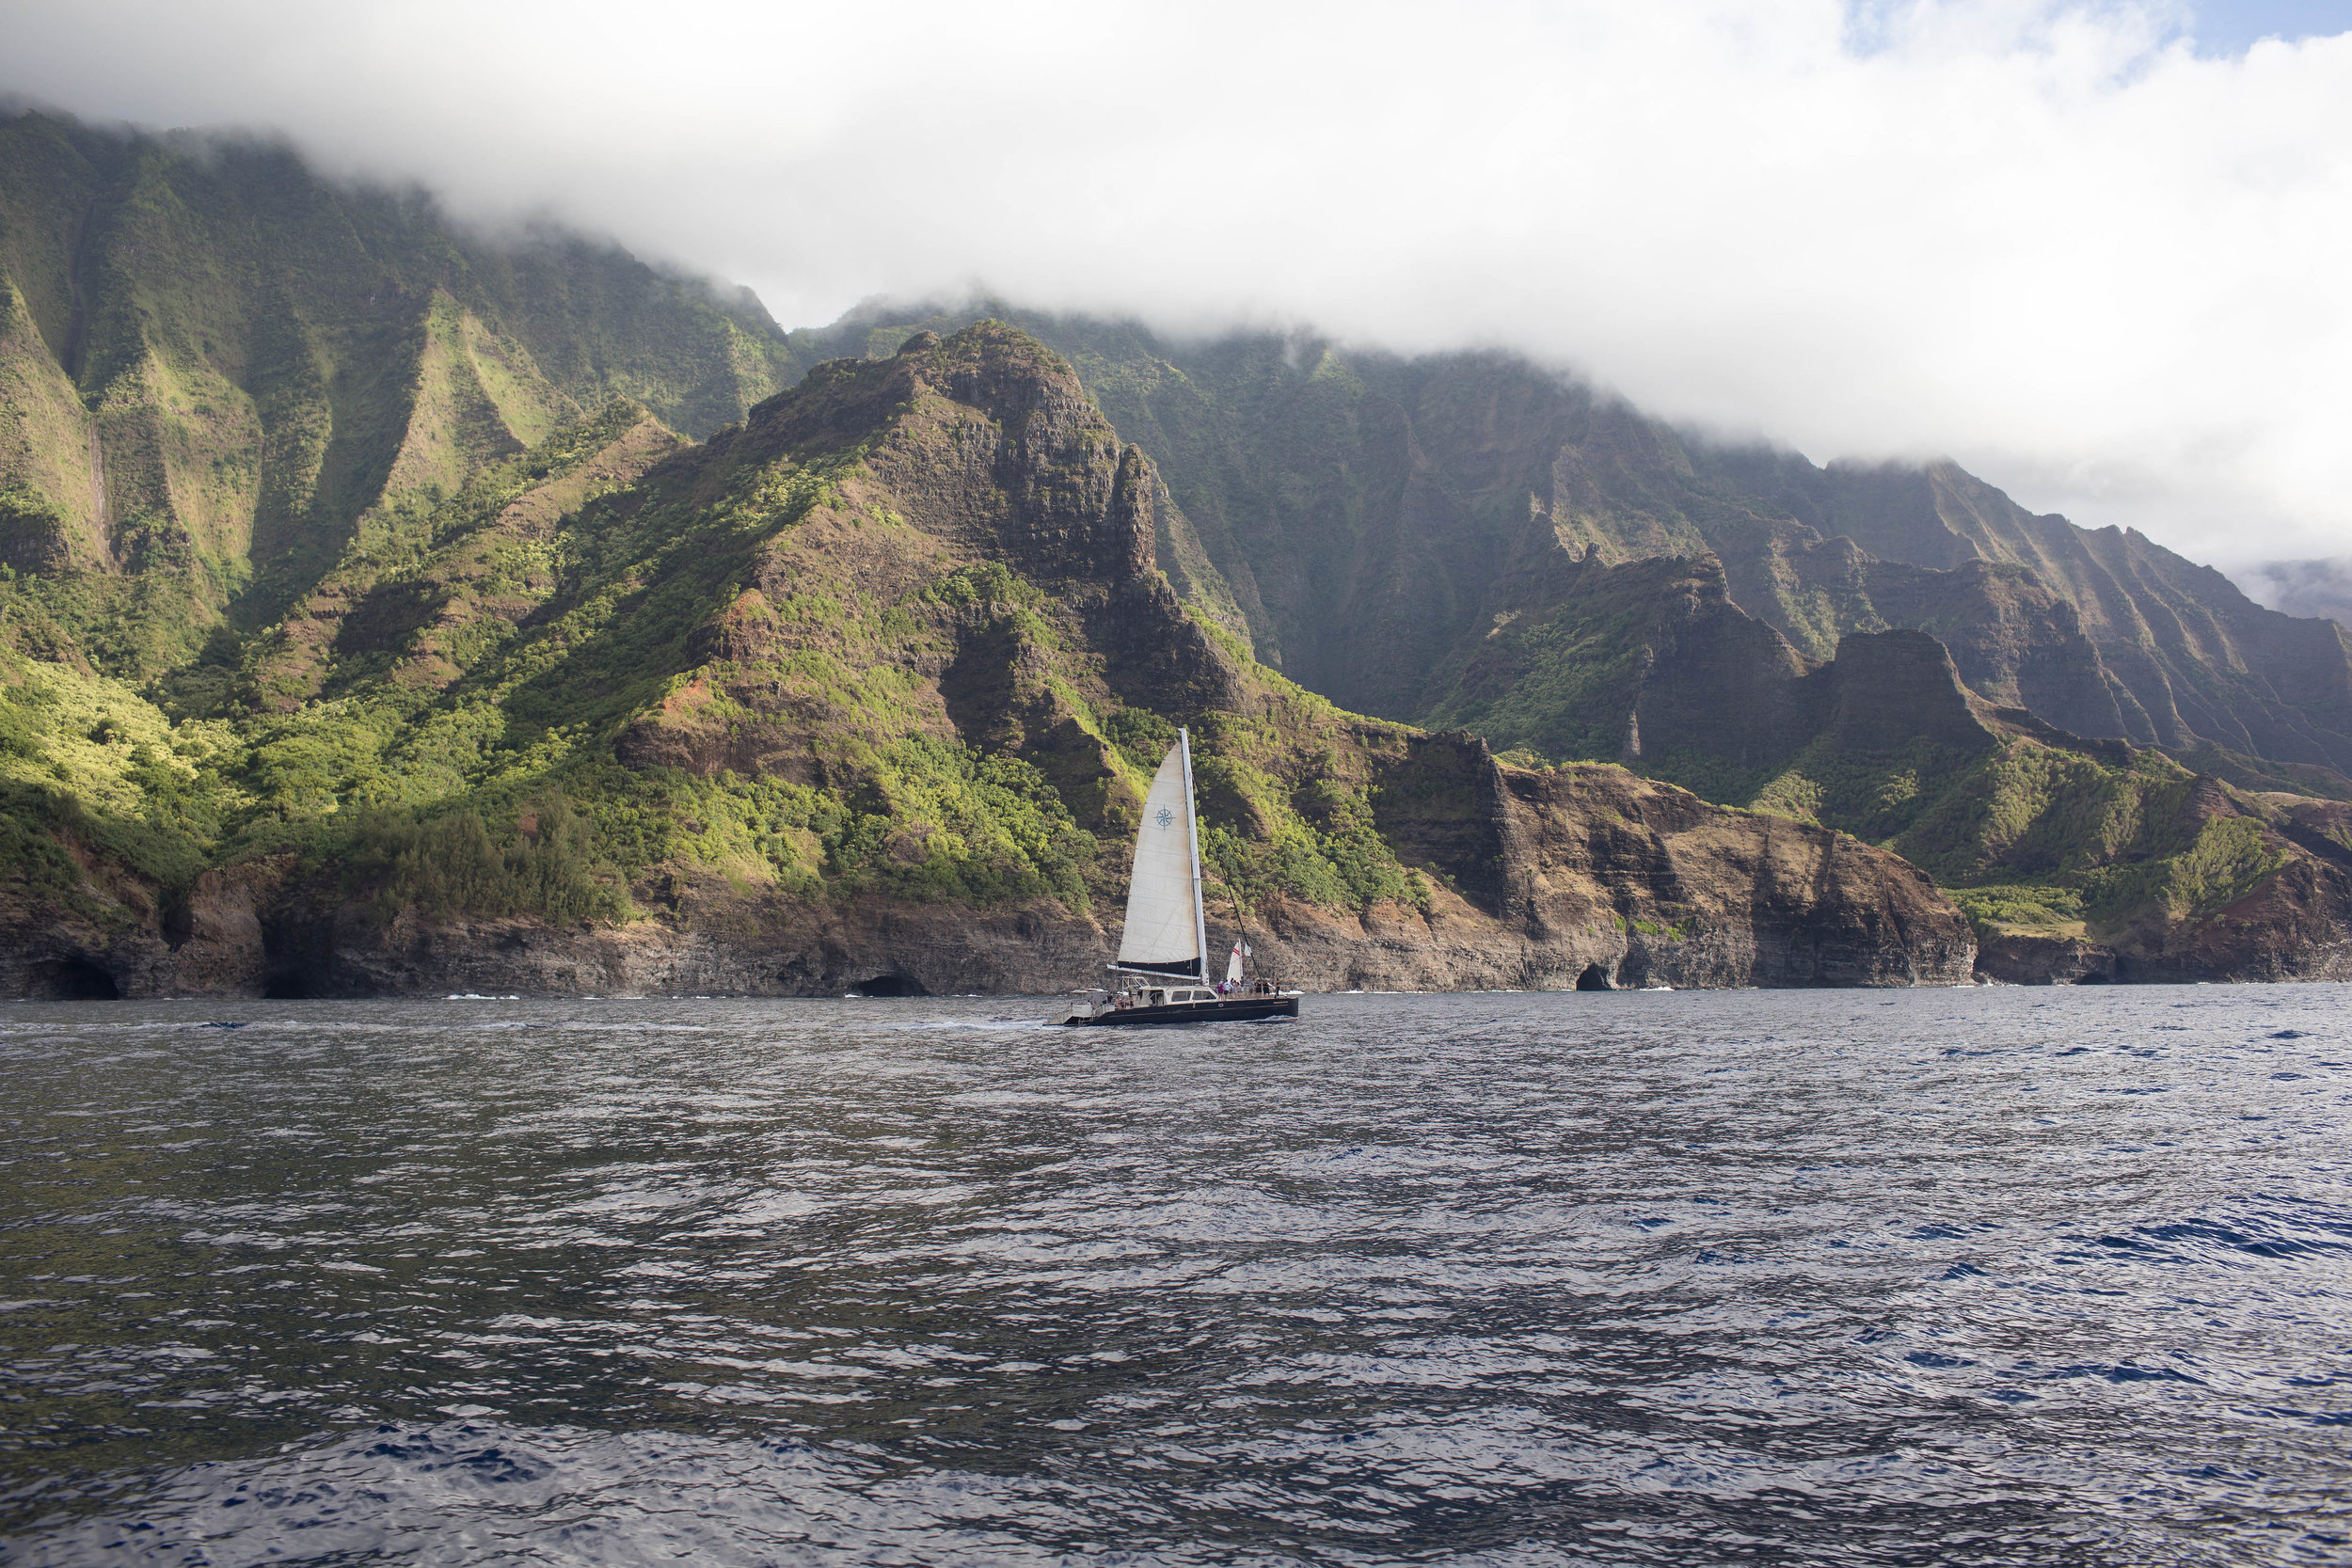 Nā Pali Coast  - This famous coastline features a 17 mile shore line, with beaches only accessible through the Kalalau Trail, (that 11 mile hike I previously mentioned). This photo was taken on our Holo Holo Charters boat tour that we've taken twice now and have loved. This coastline is a must during a trip to Kauai!